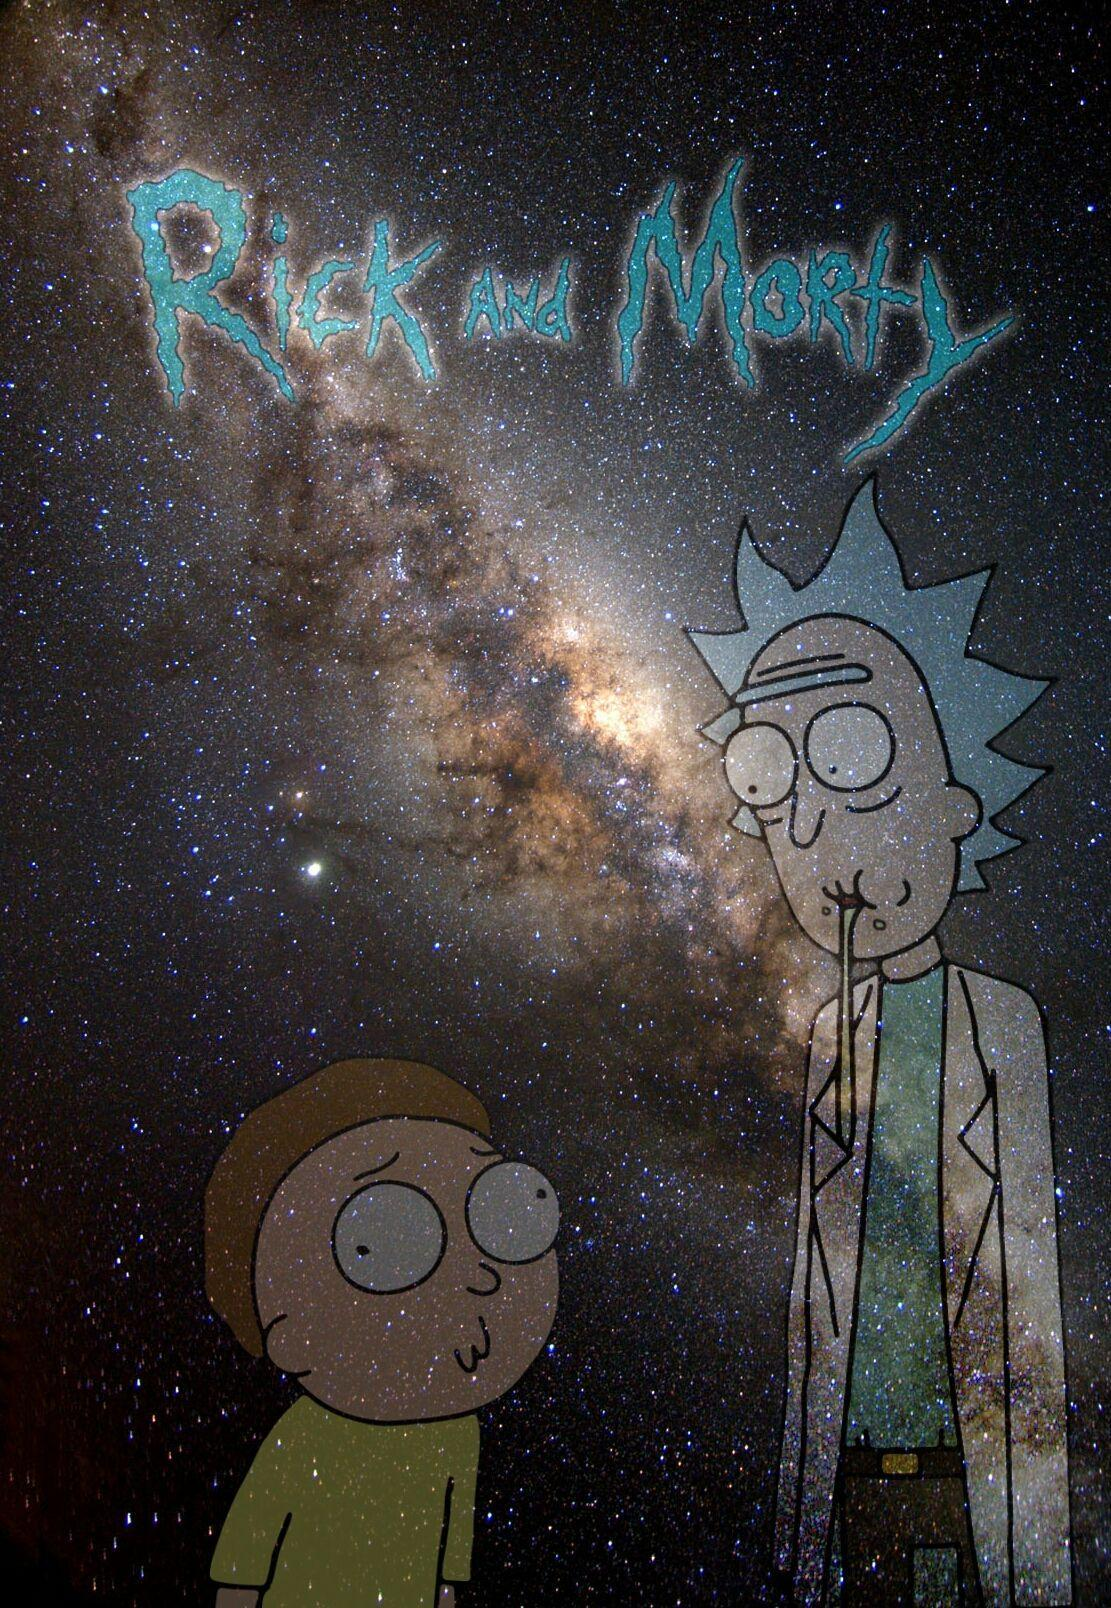 Rick and Morty wallpapers – Album on Imgur